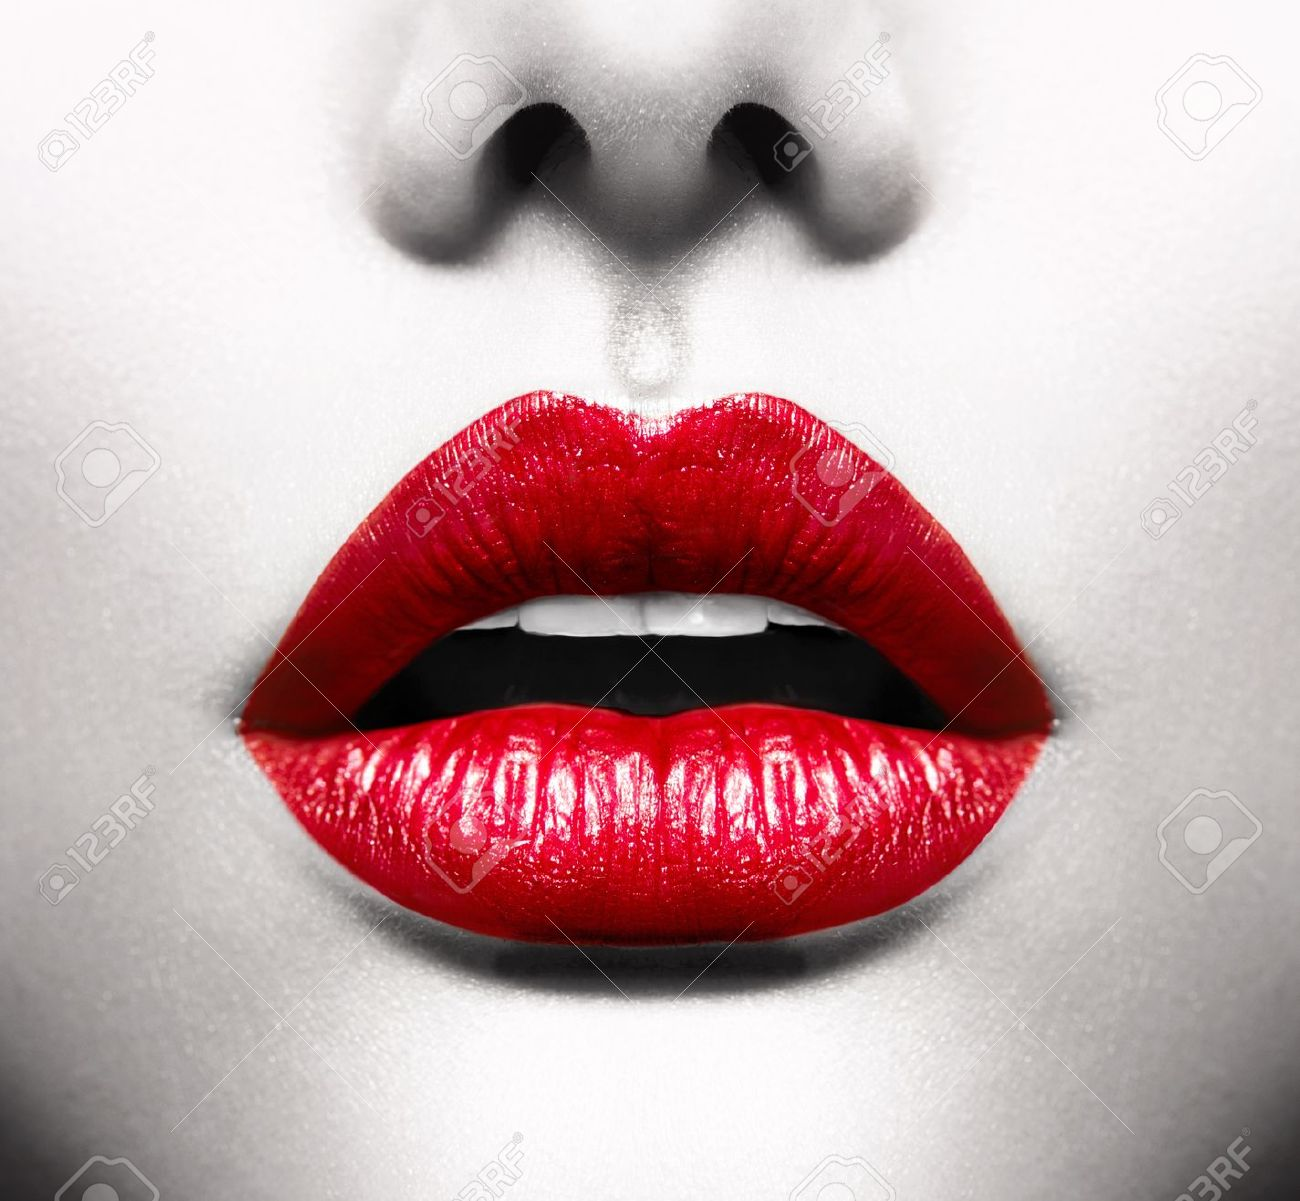 Sexy Lips  Conceptual Image with Vivid Red Open Mouth Stock Photo - 19225069